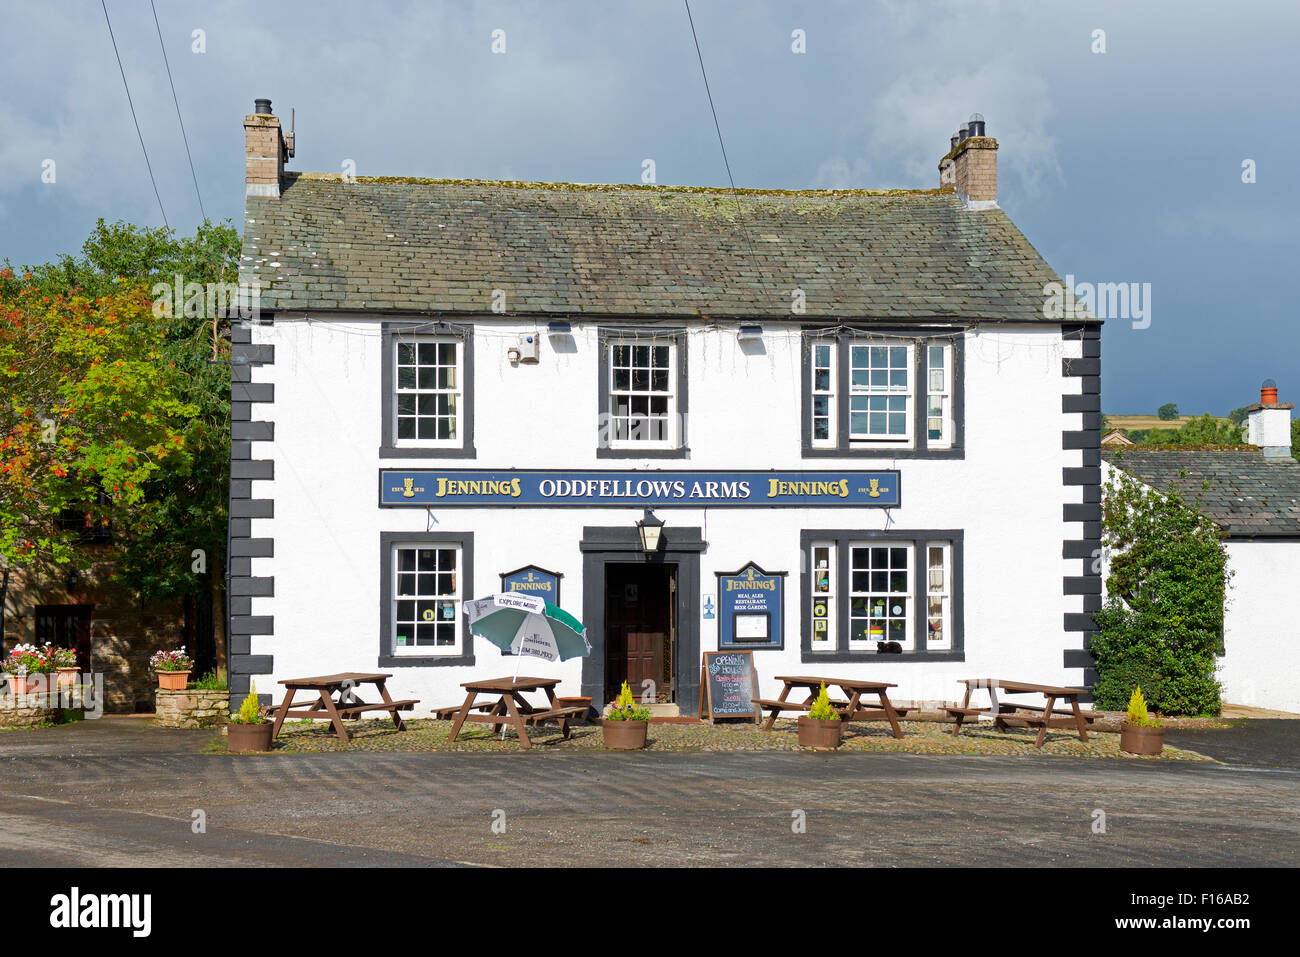 Village pub, the Oddfelows Arms, in Caldbeck, Lake District National Park, Cumbria, England UK - Stock Image